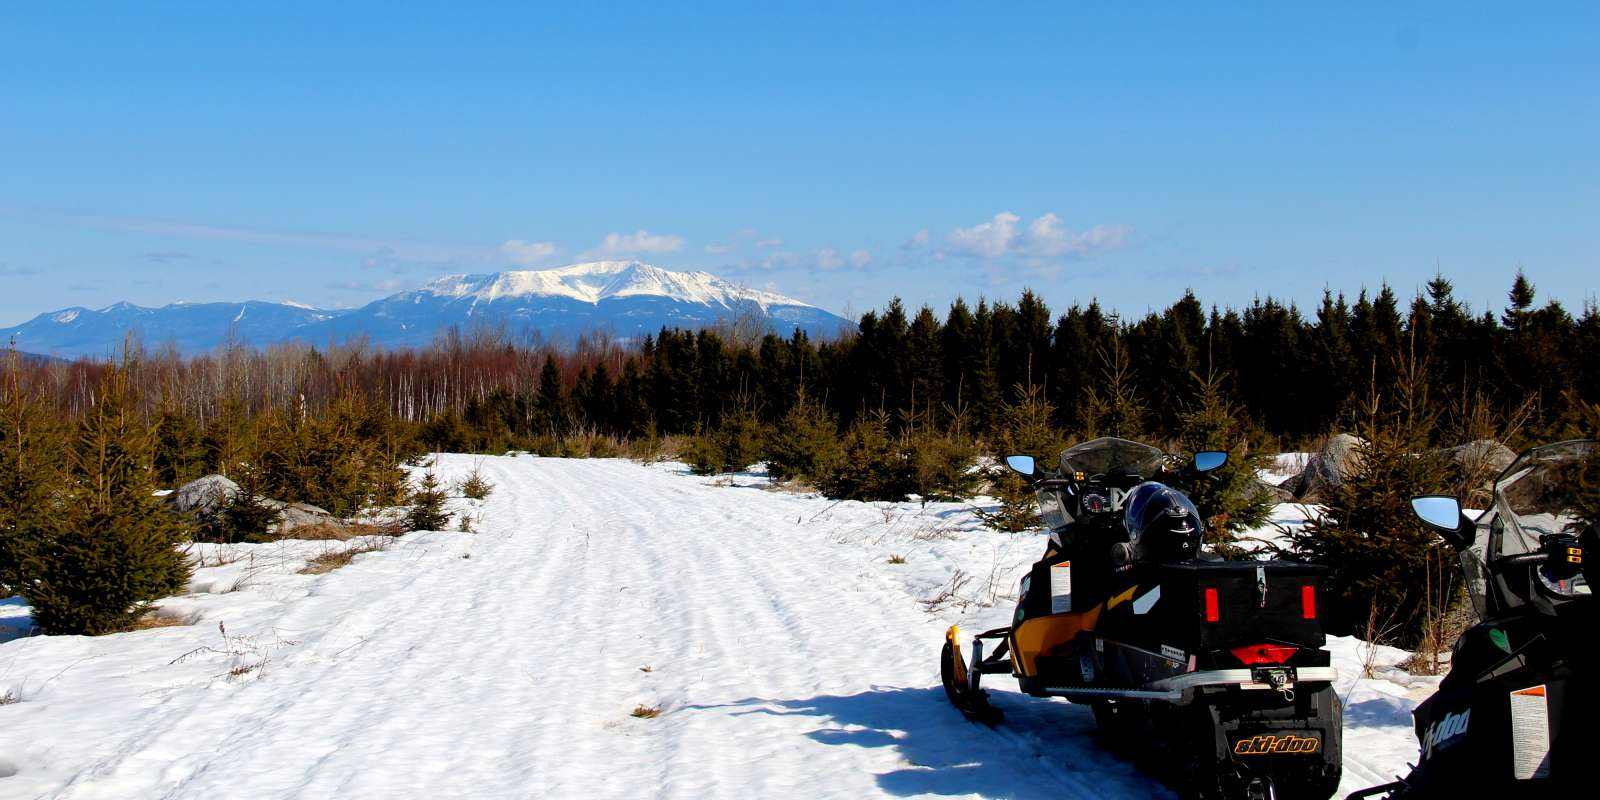 ATVs & Snowmobiling in Maine | Explore 10,000 Miles of Trails Maine Snowmobile Maps on maine campus map, maine luxury homes, maine map directions, maine vacation packages, maine points of interest, maine license, maine backpacking trails, maine town map, maine shootings, maine snowfall totals, bingham maine google maps, maine maps routes, maine flood maps, maine snowfall maps, maine area codes, maine snowmobiling, maine atv maps, maine on map, maine beach,